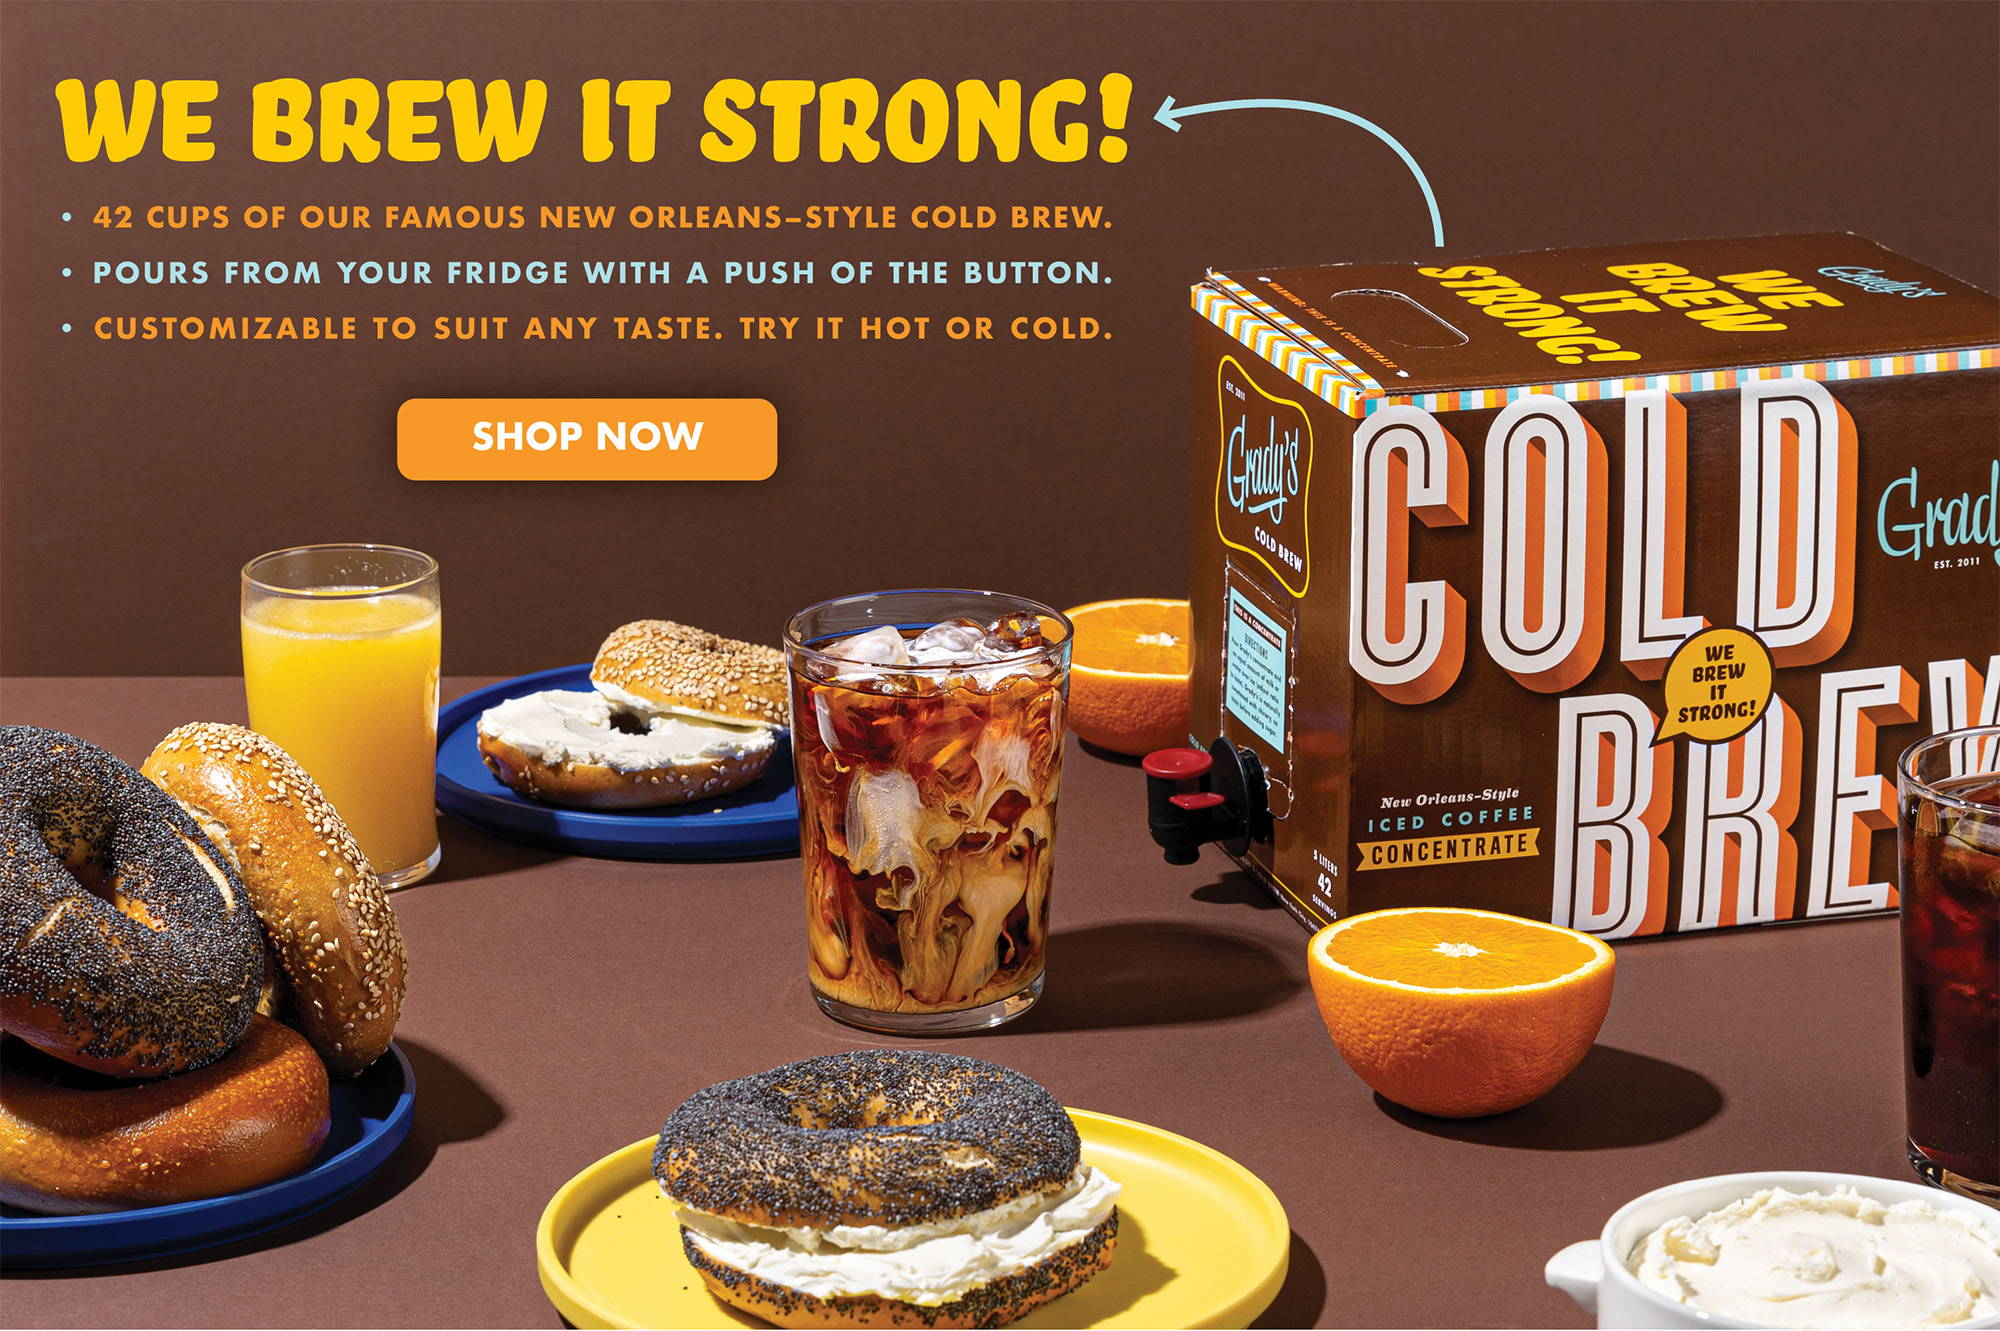 We Brew it STRONG!